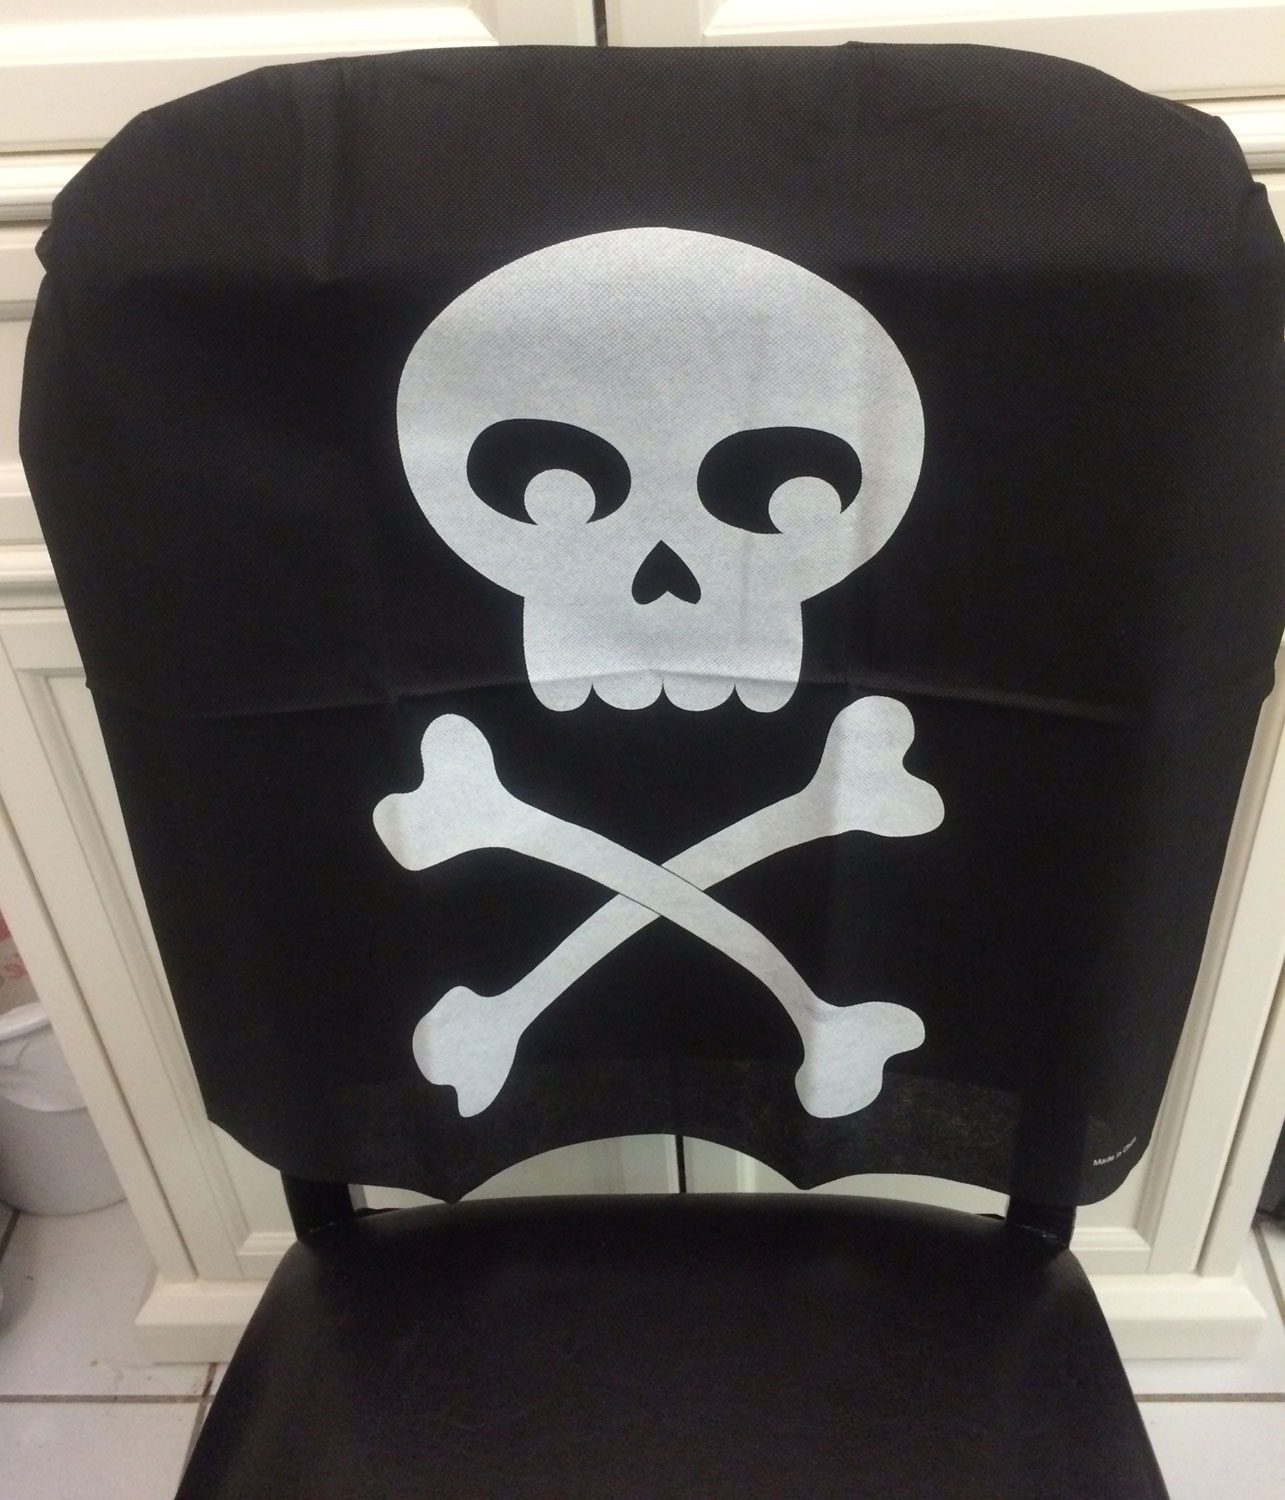 Black skull chair - Black Pirate Skull Crossbones Chair Cover Birthday Party Halloween Decoration